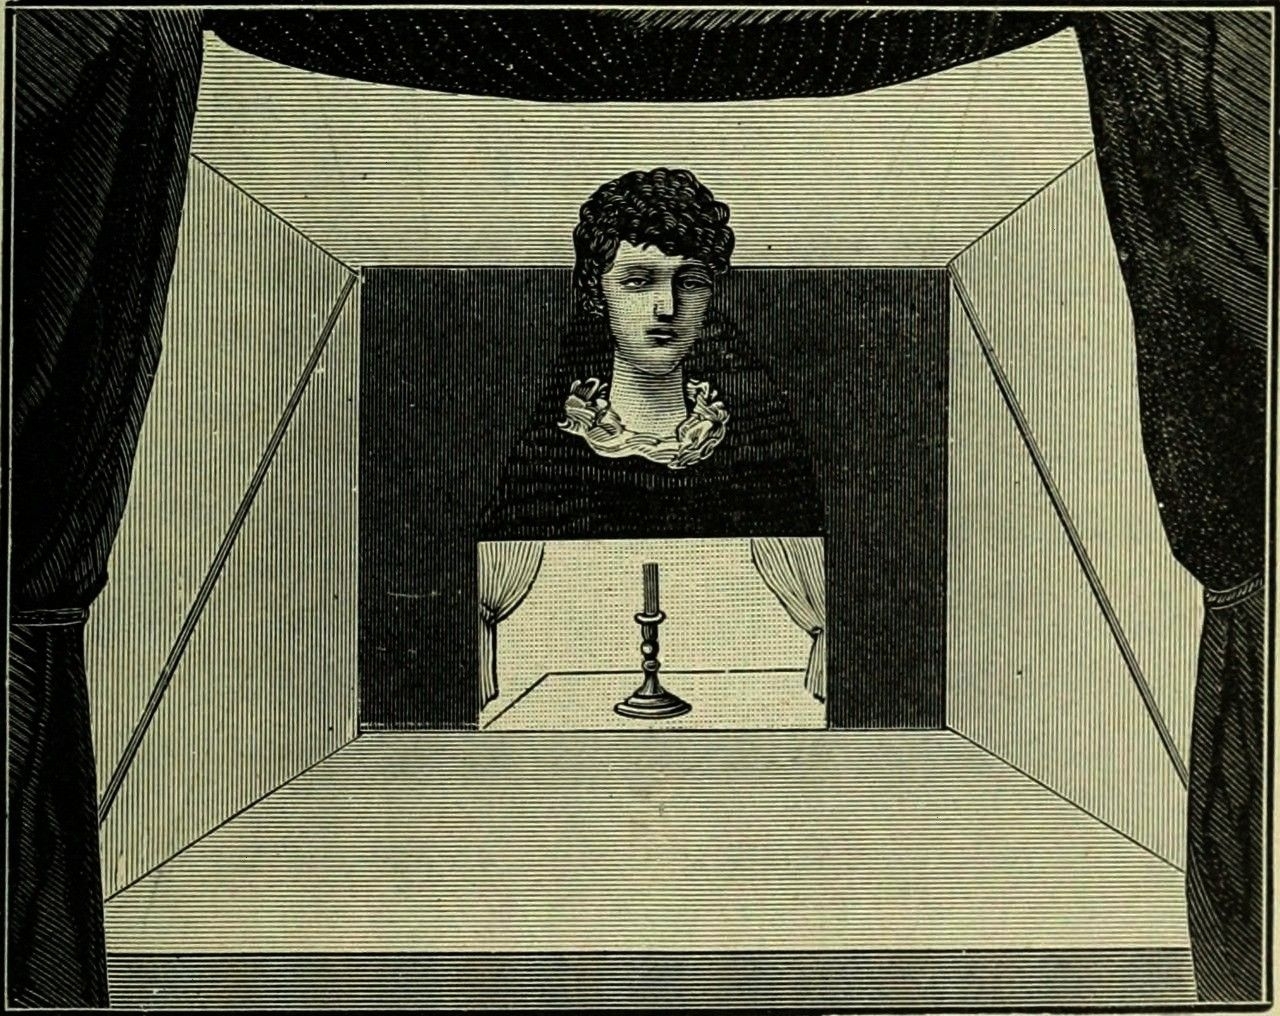 in the center of a stage Magic stage illusions and scientific diversions  An isolated head in the center of a stage Magic stage illusions and scientific diversi...